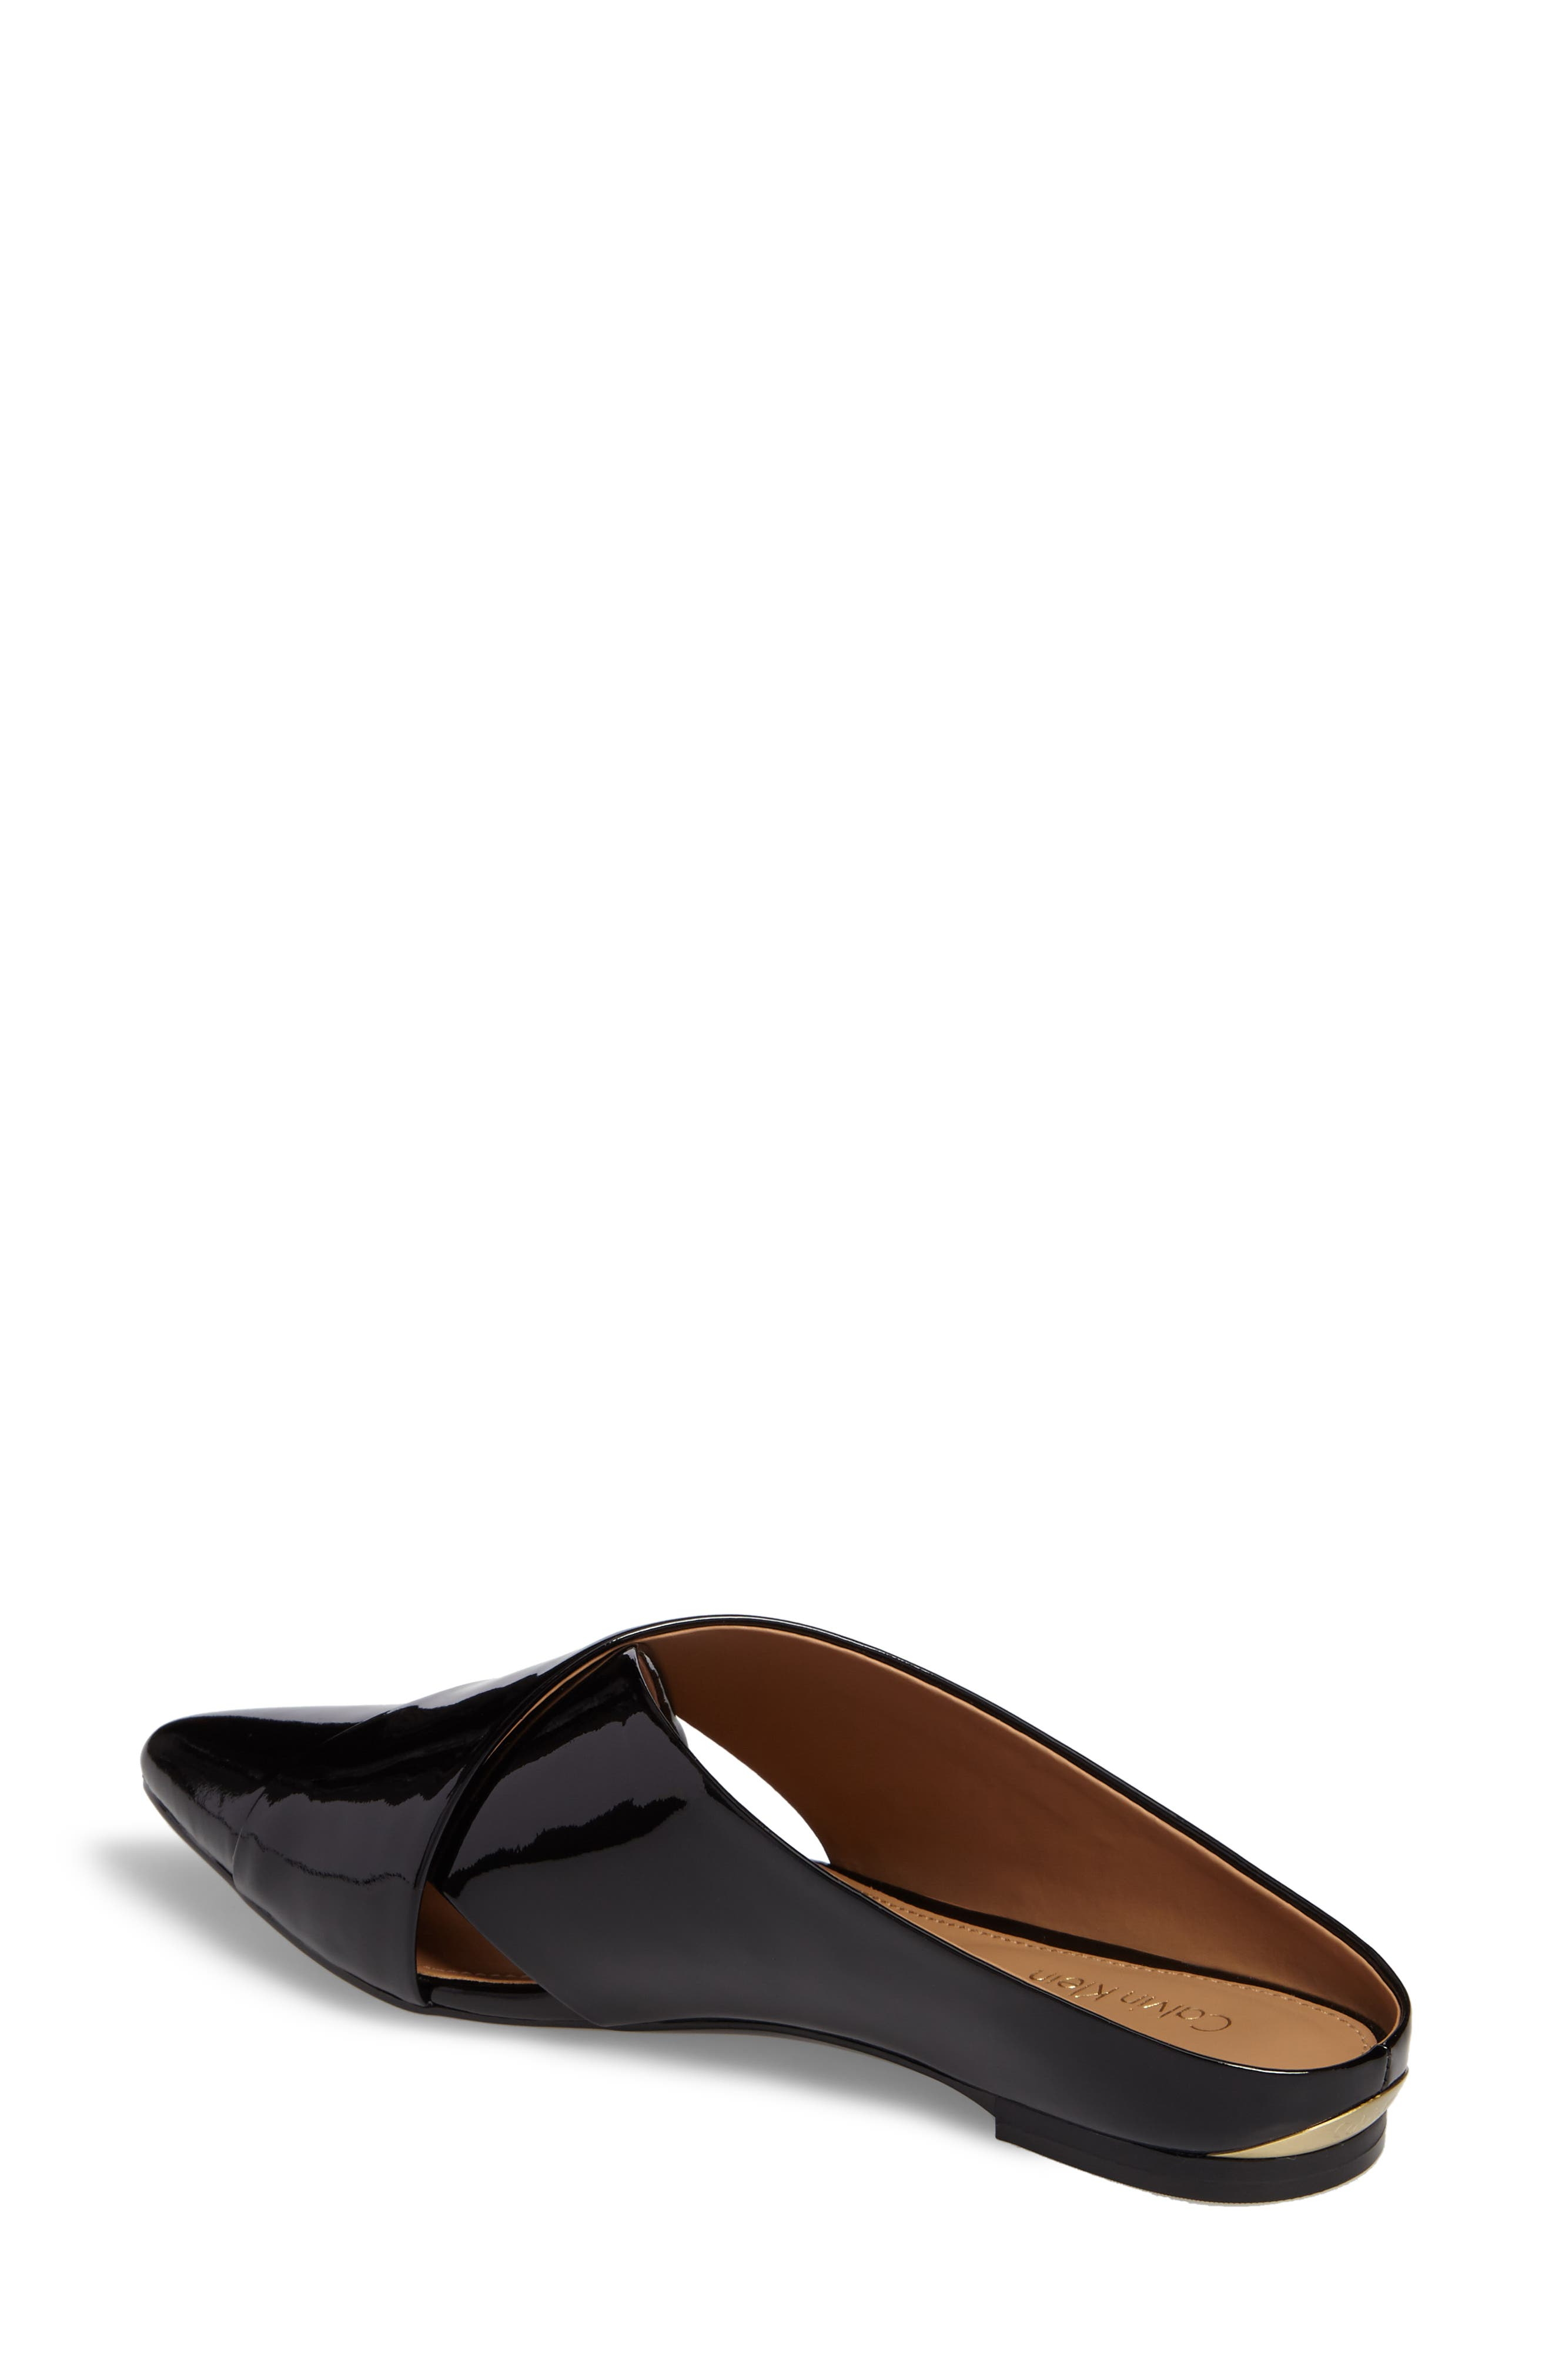 Gerda Cross Strap Mule,                             Alternate thumbnail 2, color,                             Black Patent